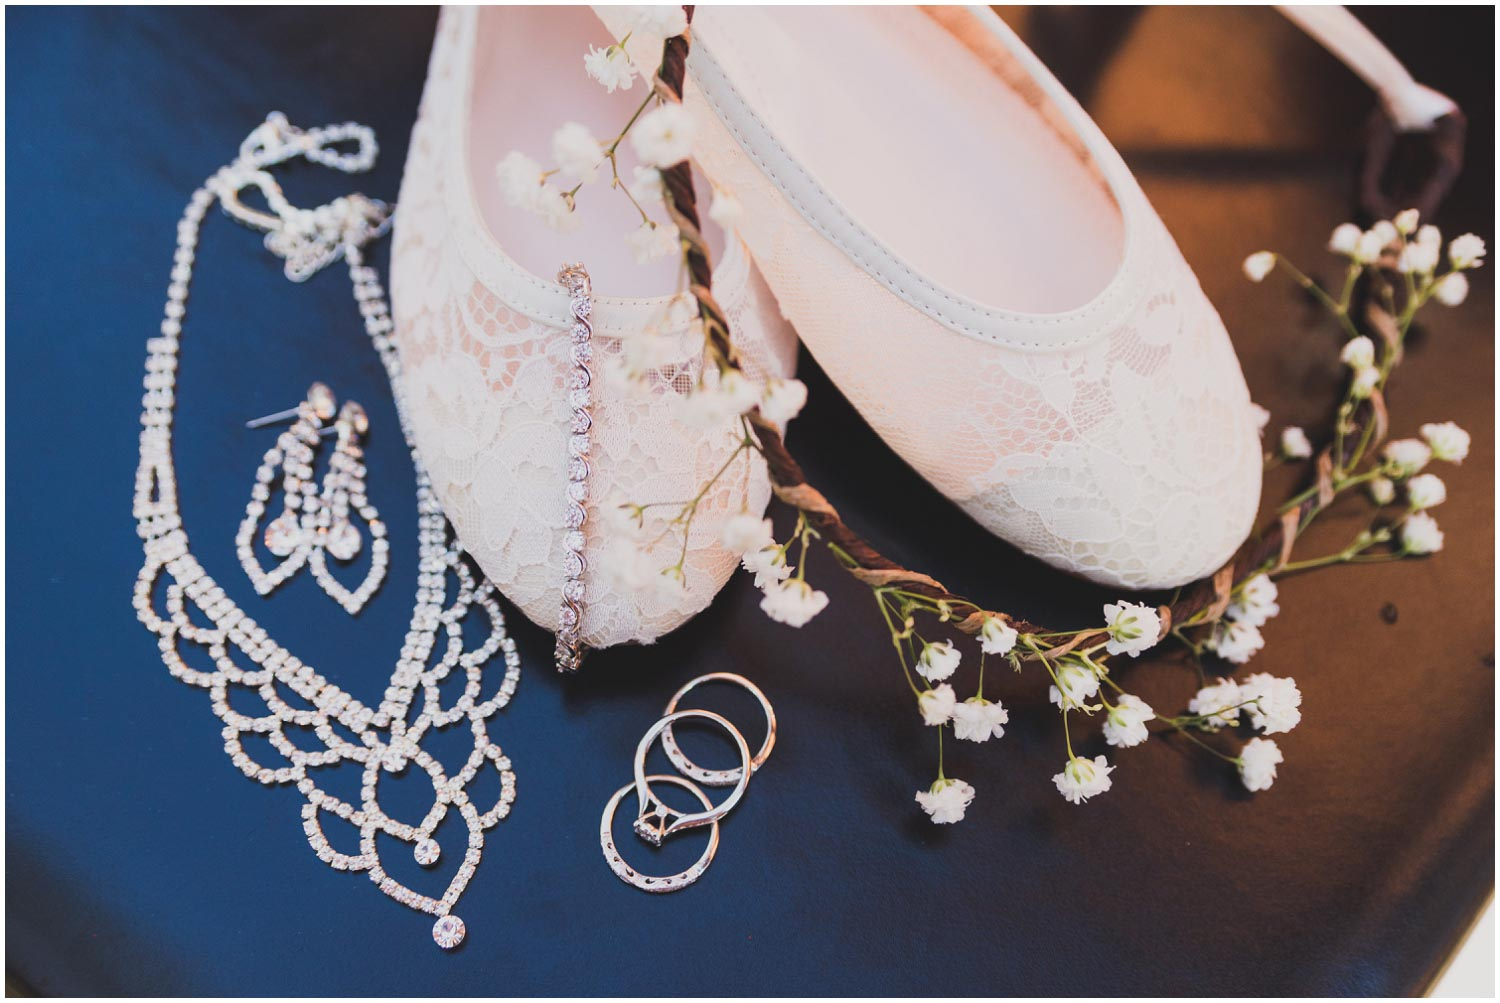 bride's details including rhinestone earrings and necklace, lace shoes, babies breath flower crown and wedding rings